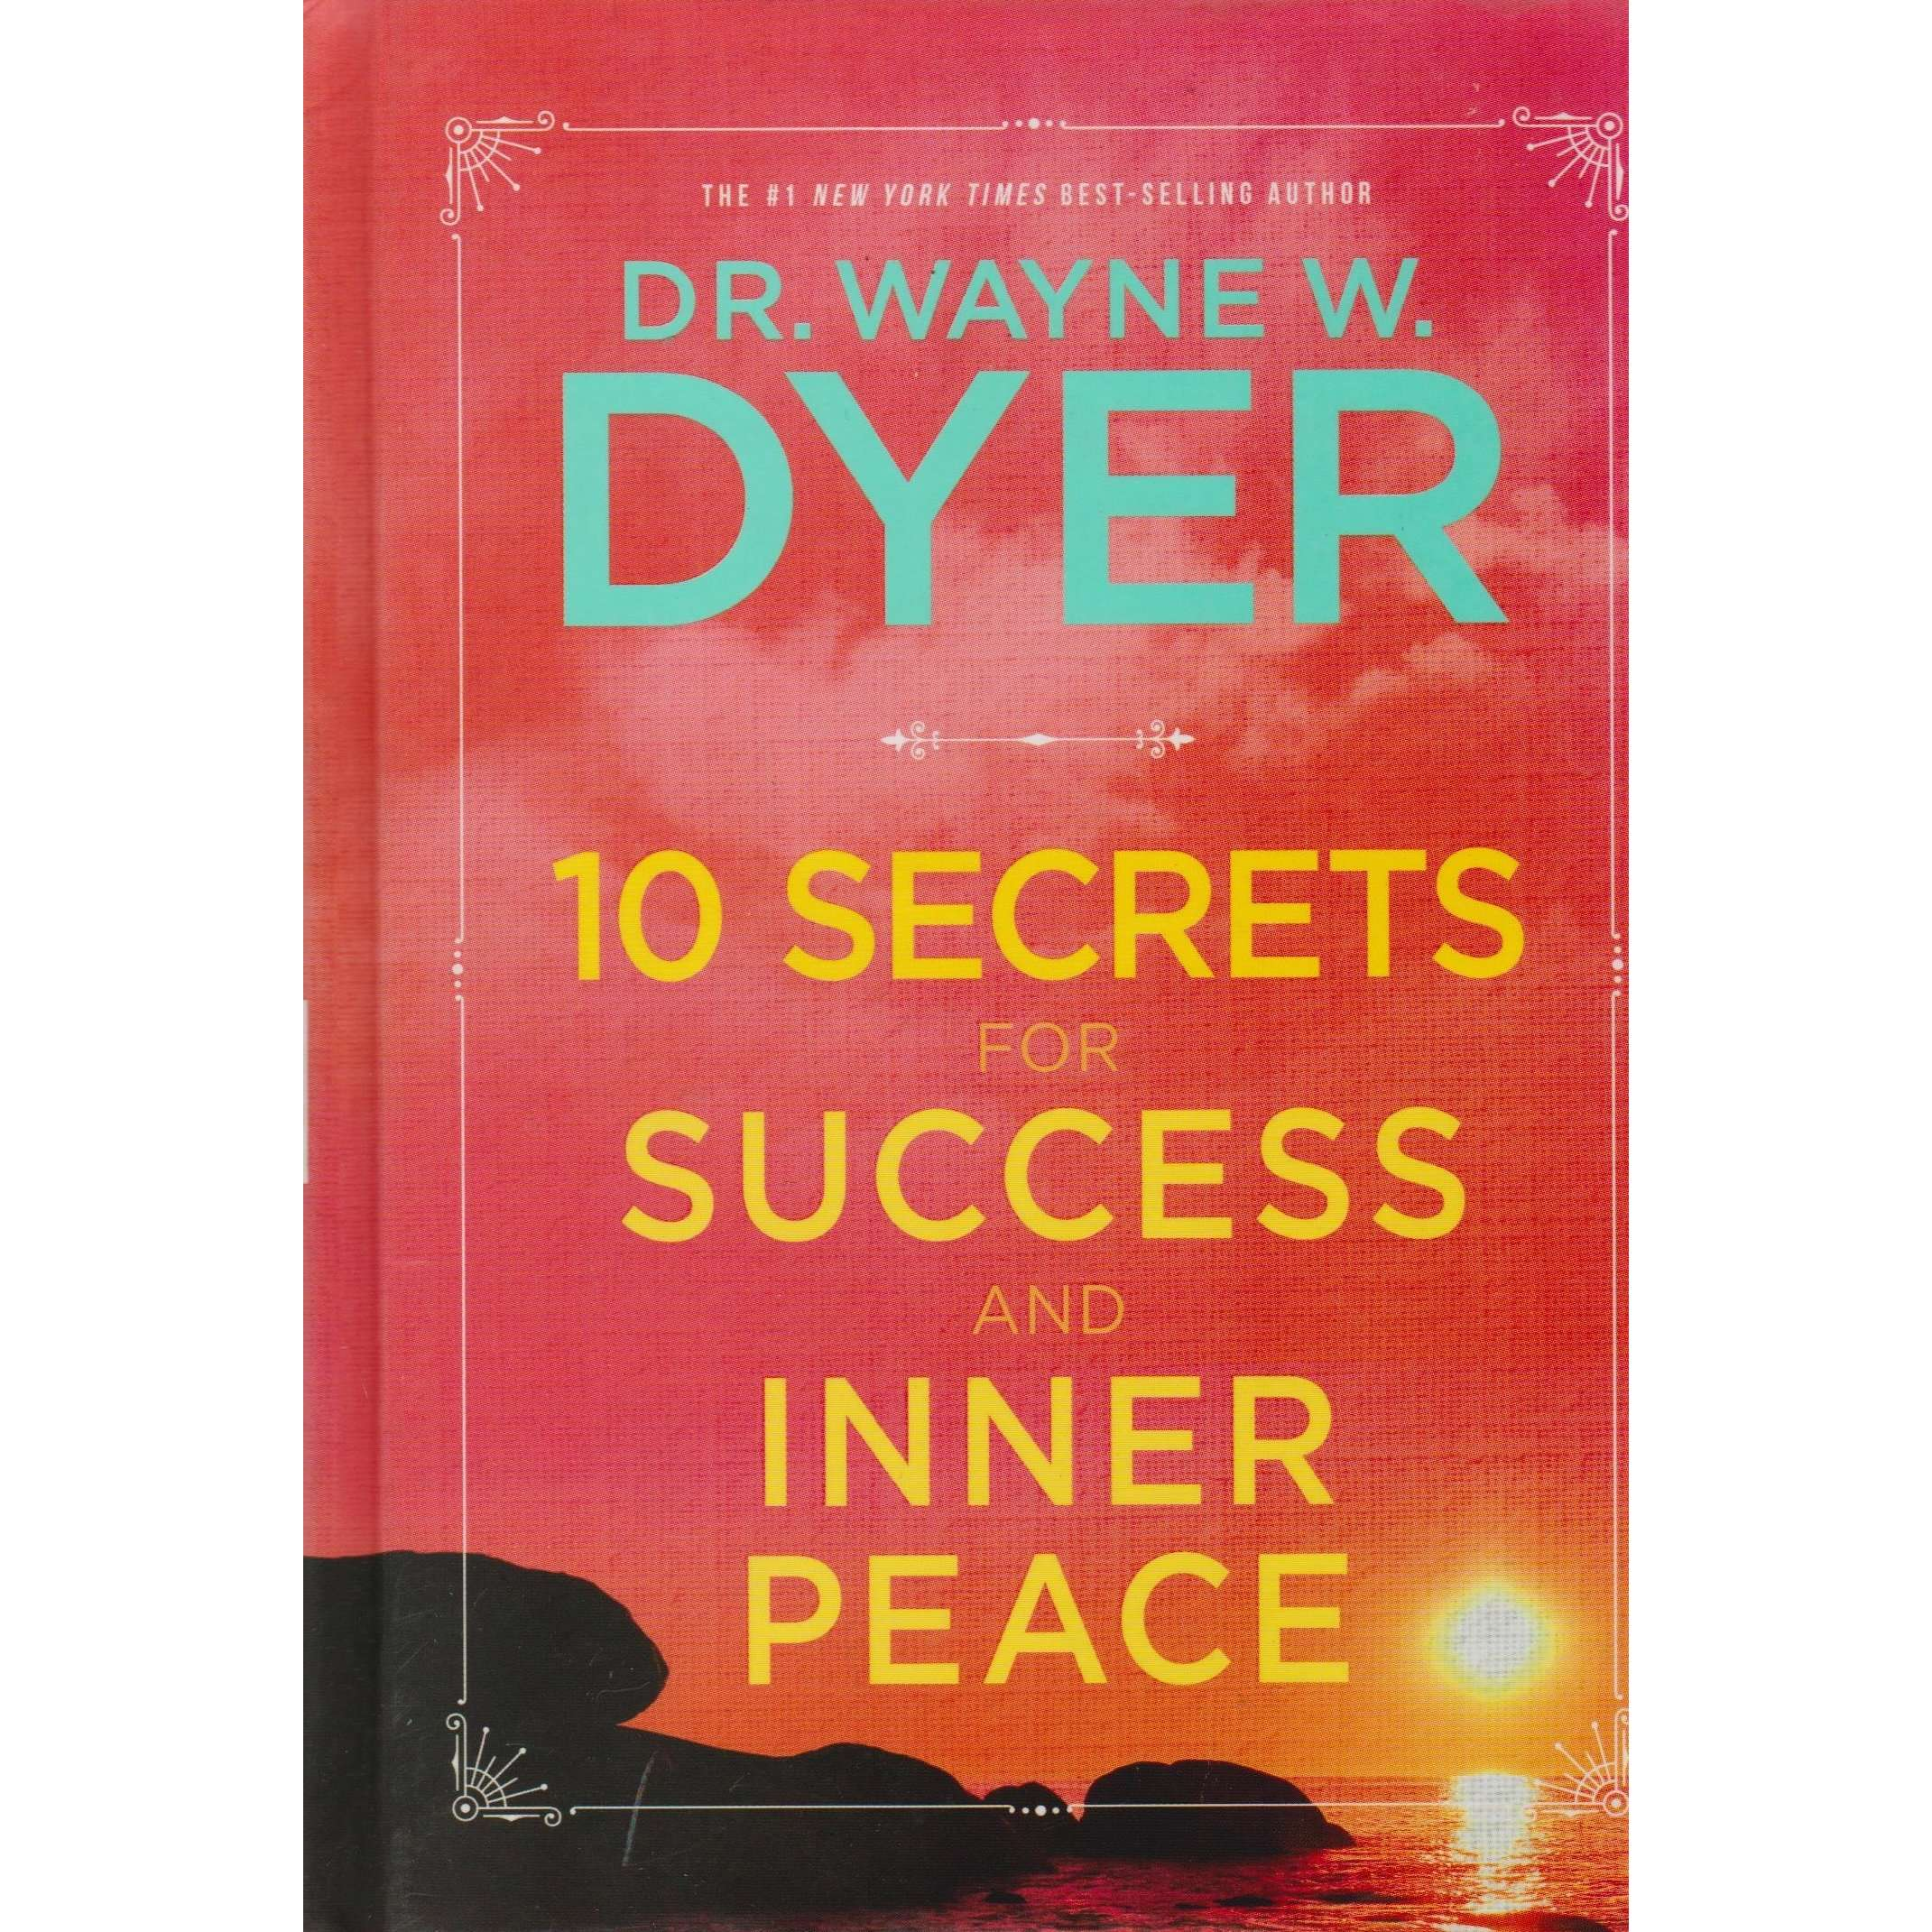 Httpsbookdealers daily httpsbookdealers 10 secrets for success and inner peace dr wayne w dyerbookdealers 11127999gv1518782416 fandeluxe Images